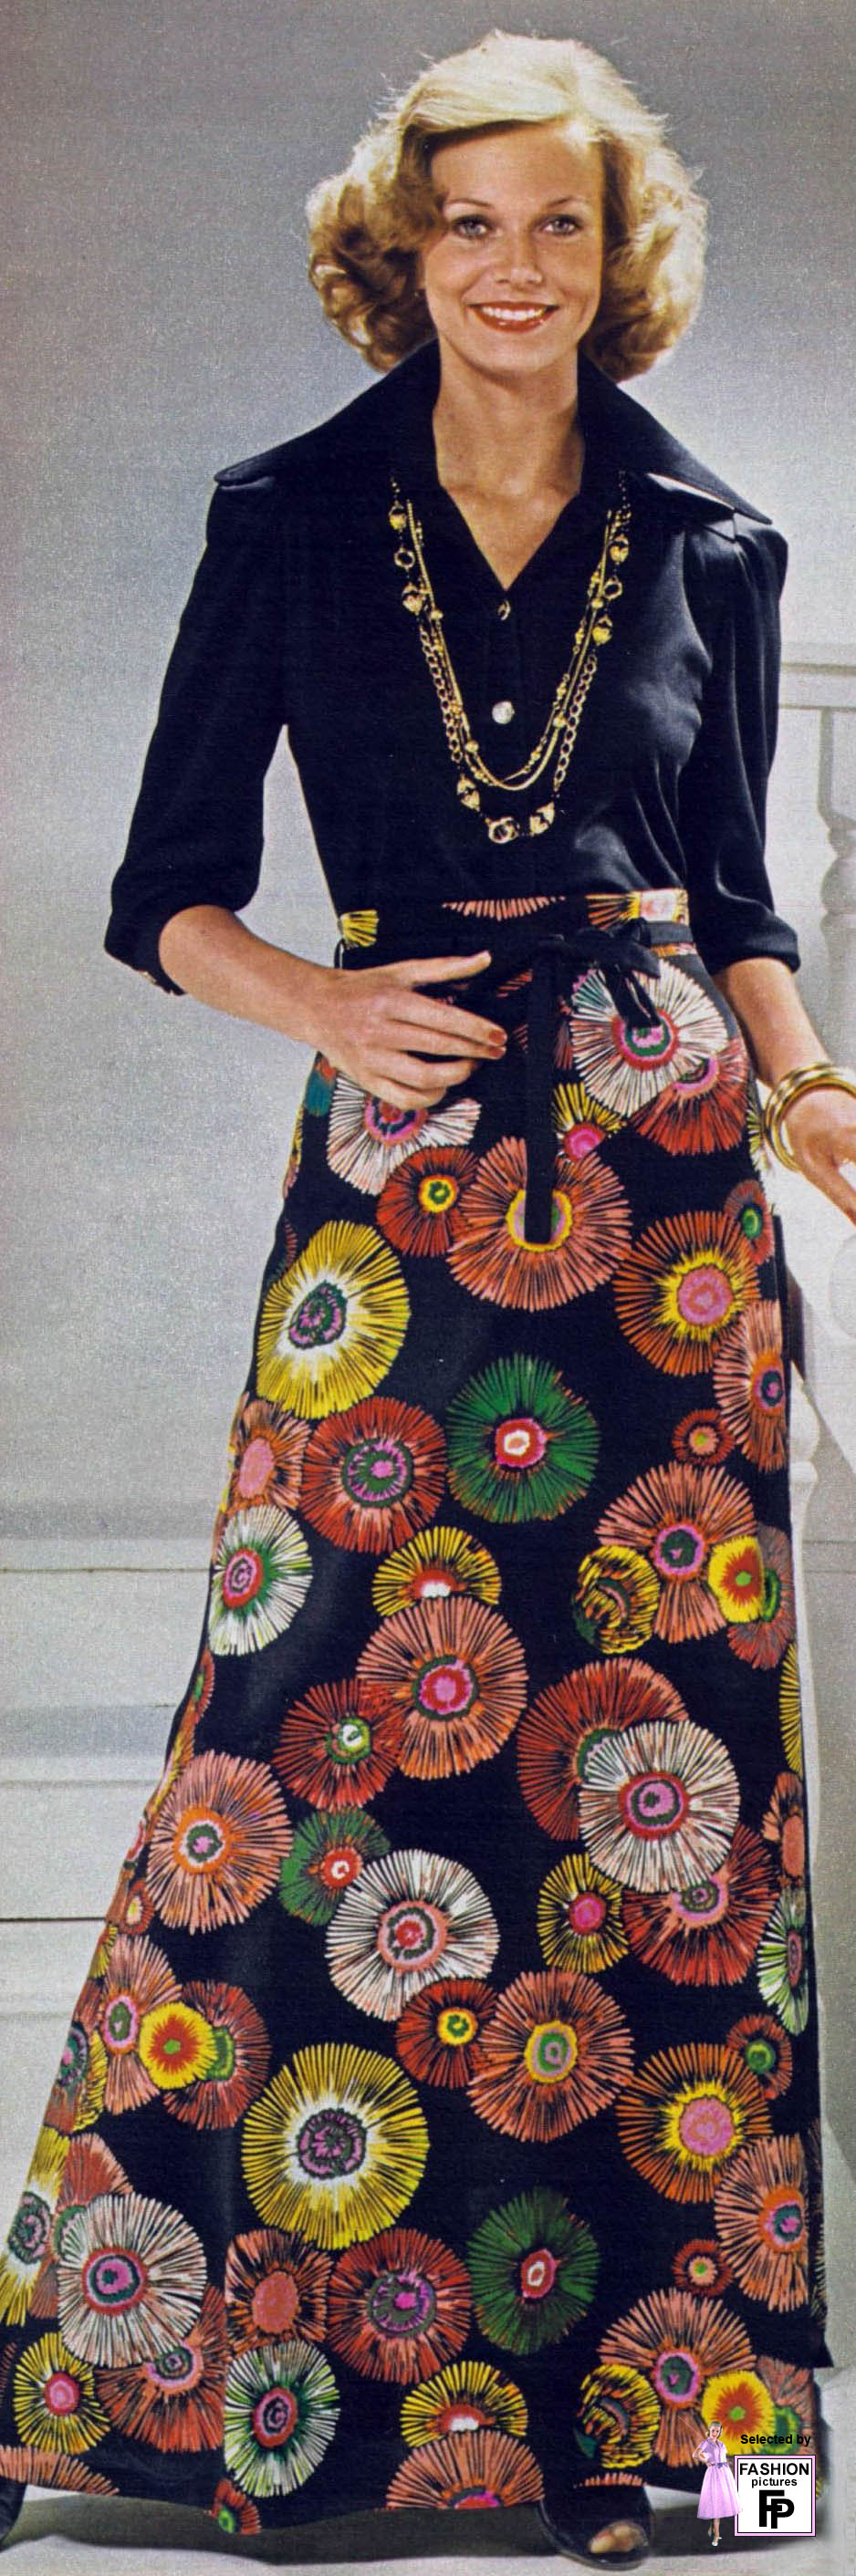 1970s Fashion Page 46 Fashion Pictures